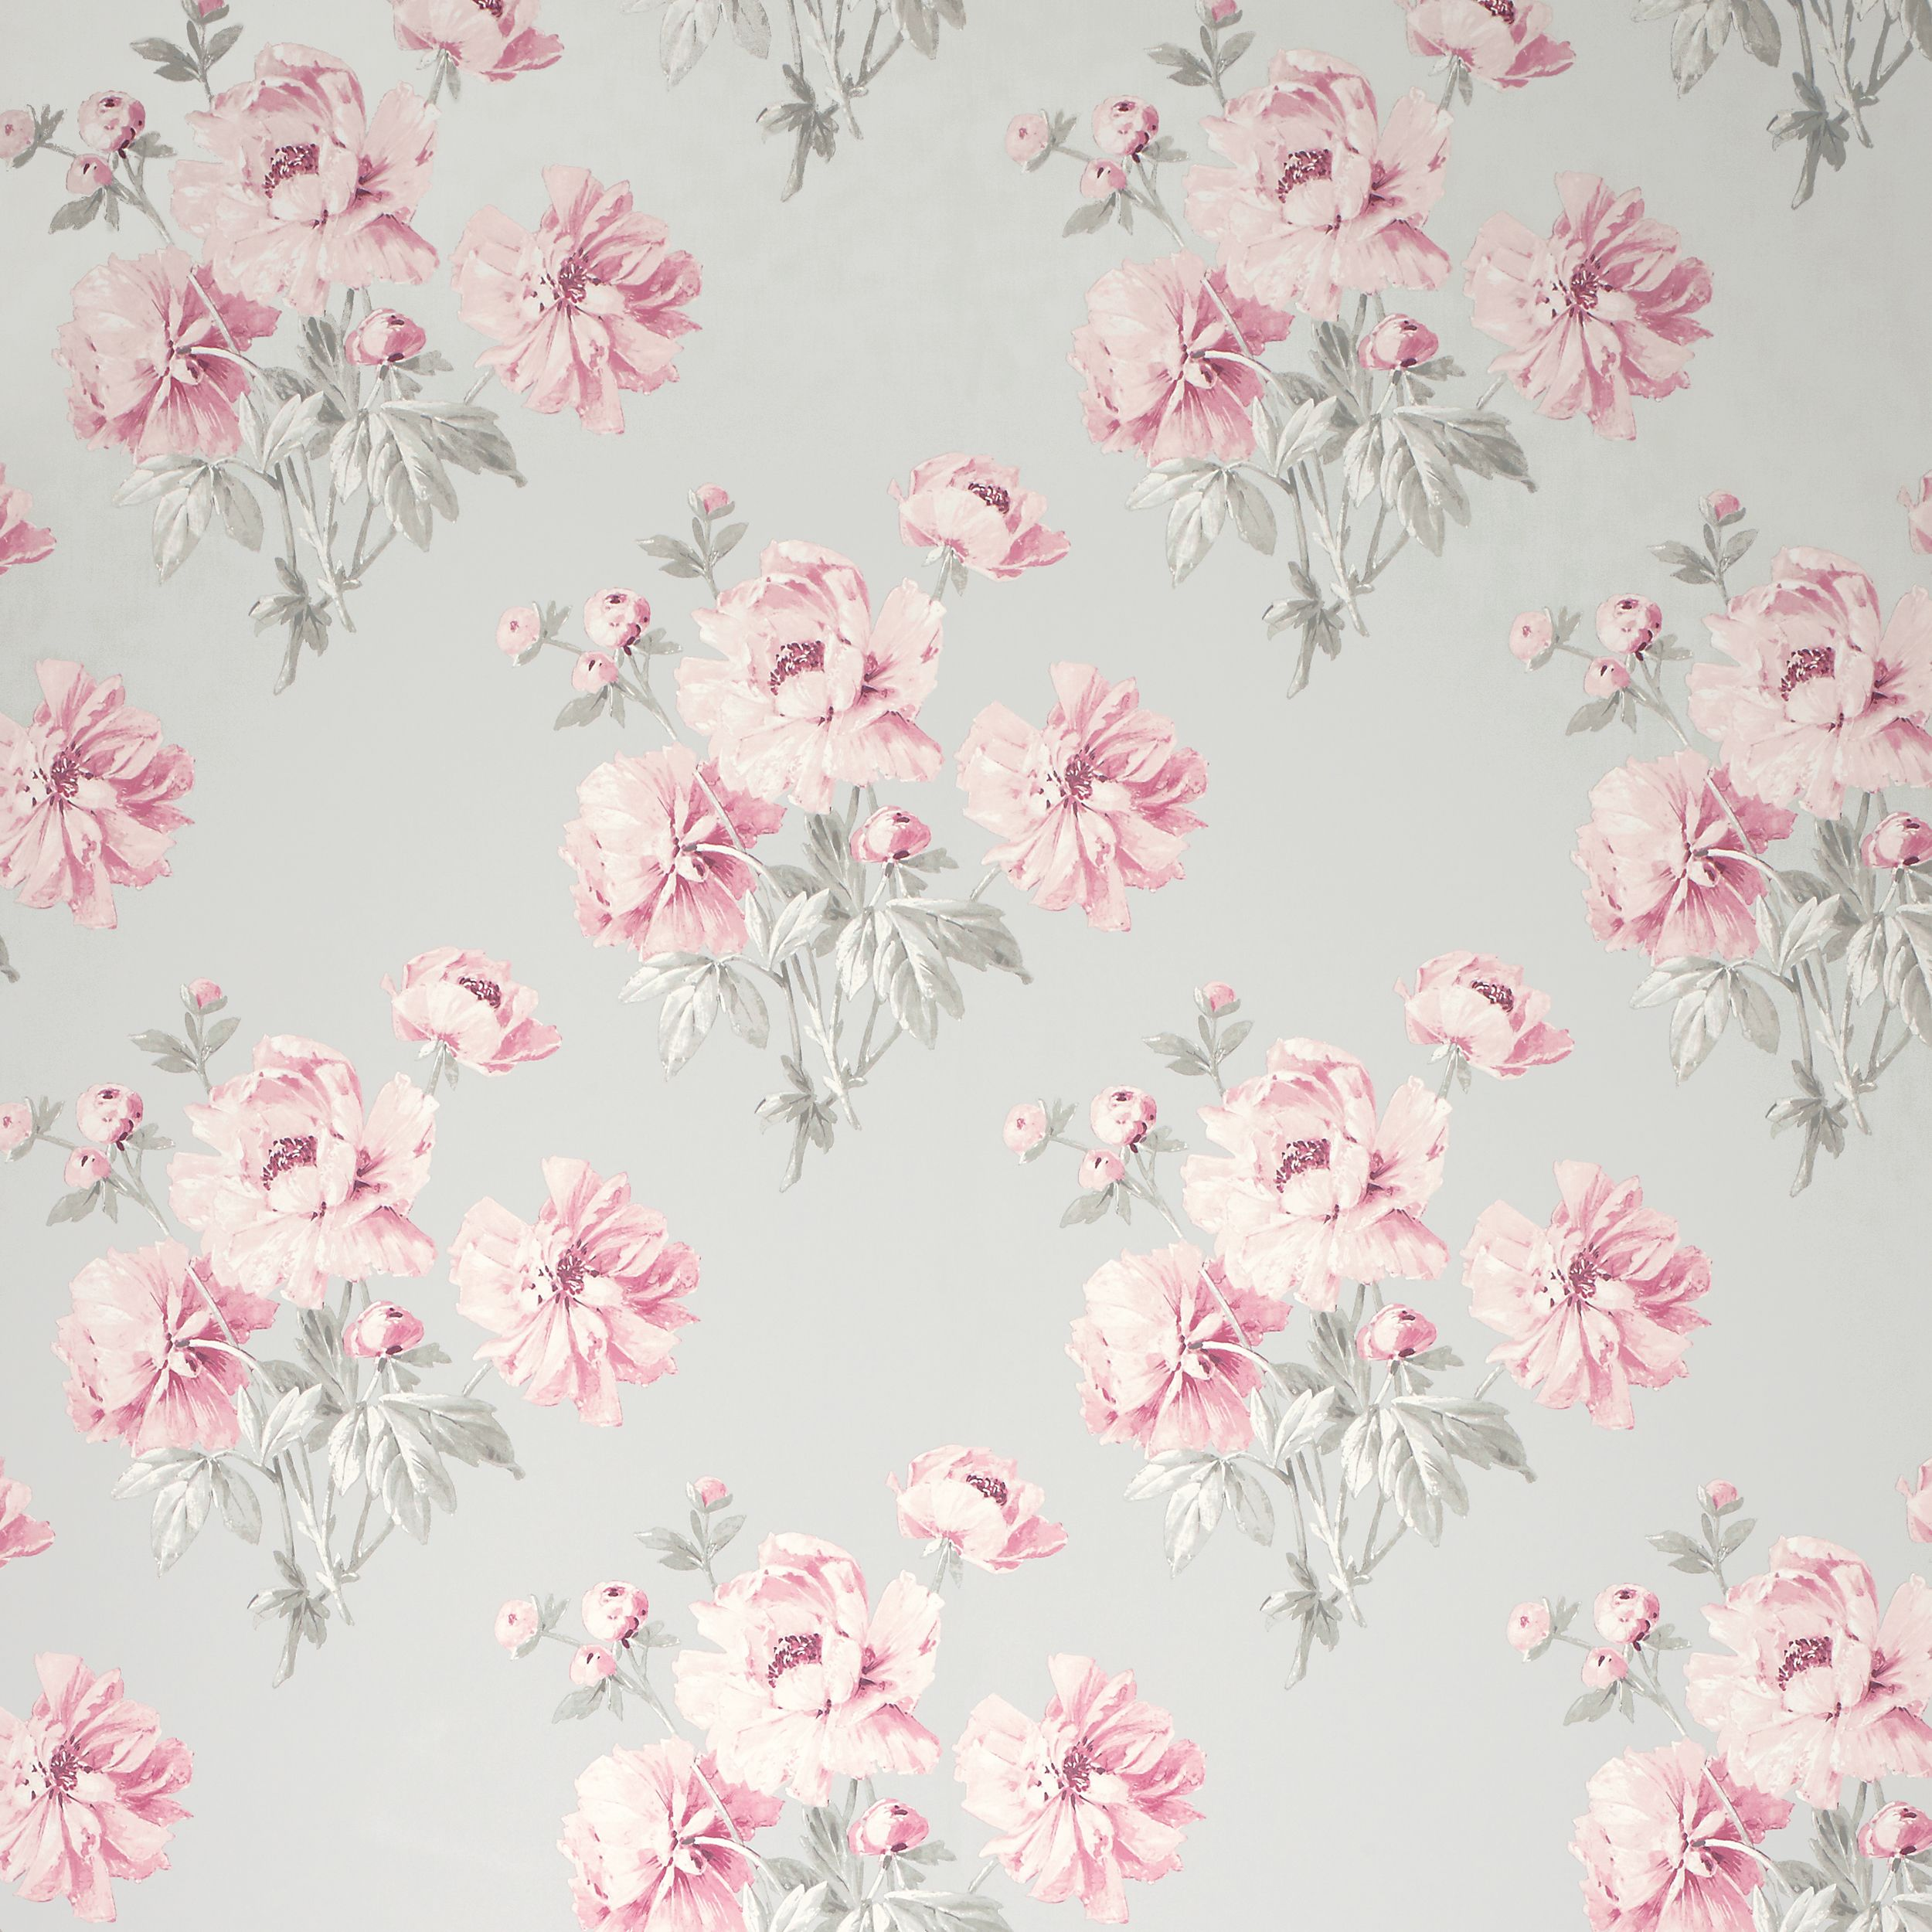 laura ashley beatrice cyclamen floral wallpaper patterns flowers pinterest floral. Black Bedroom Furniture Sets. Home Design Ideas